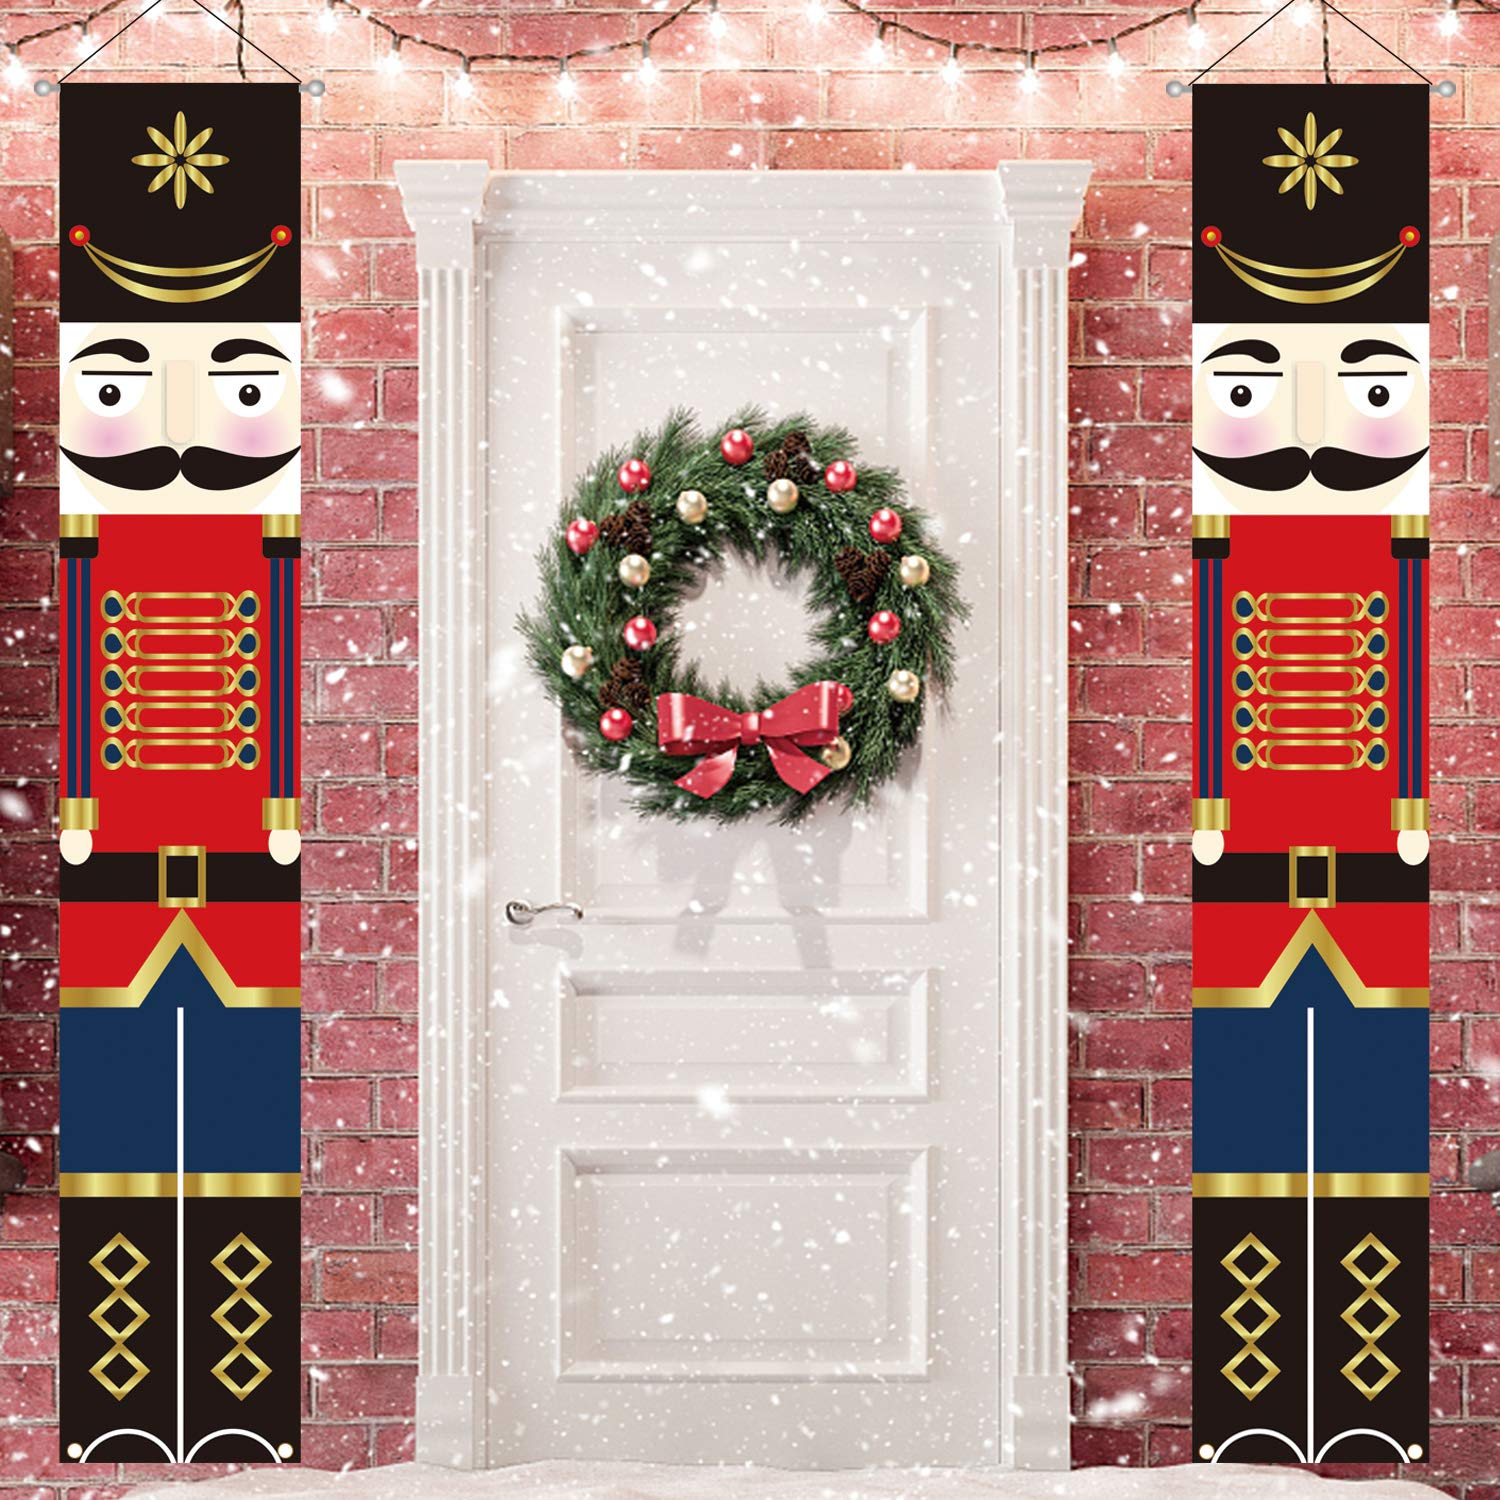 Outdoor Christmas Porch Sign Decorations Life Size-Nutcracker Front Door Decor